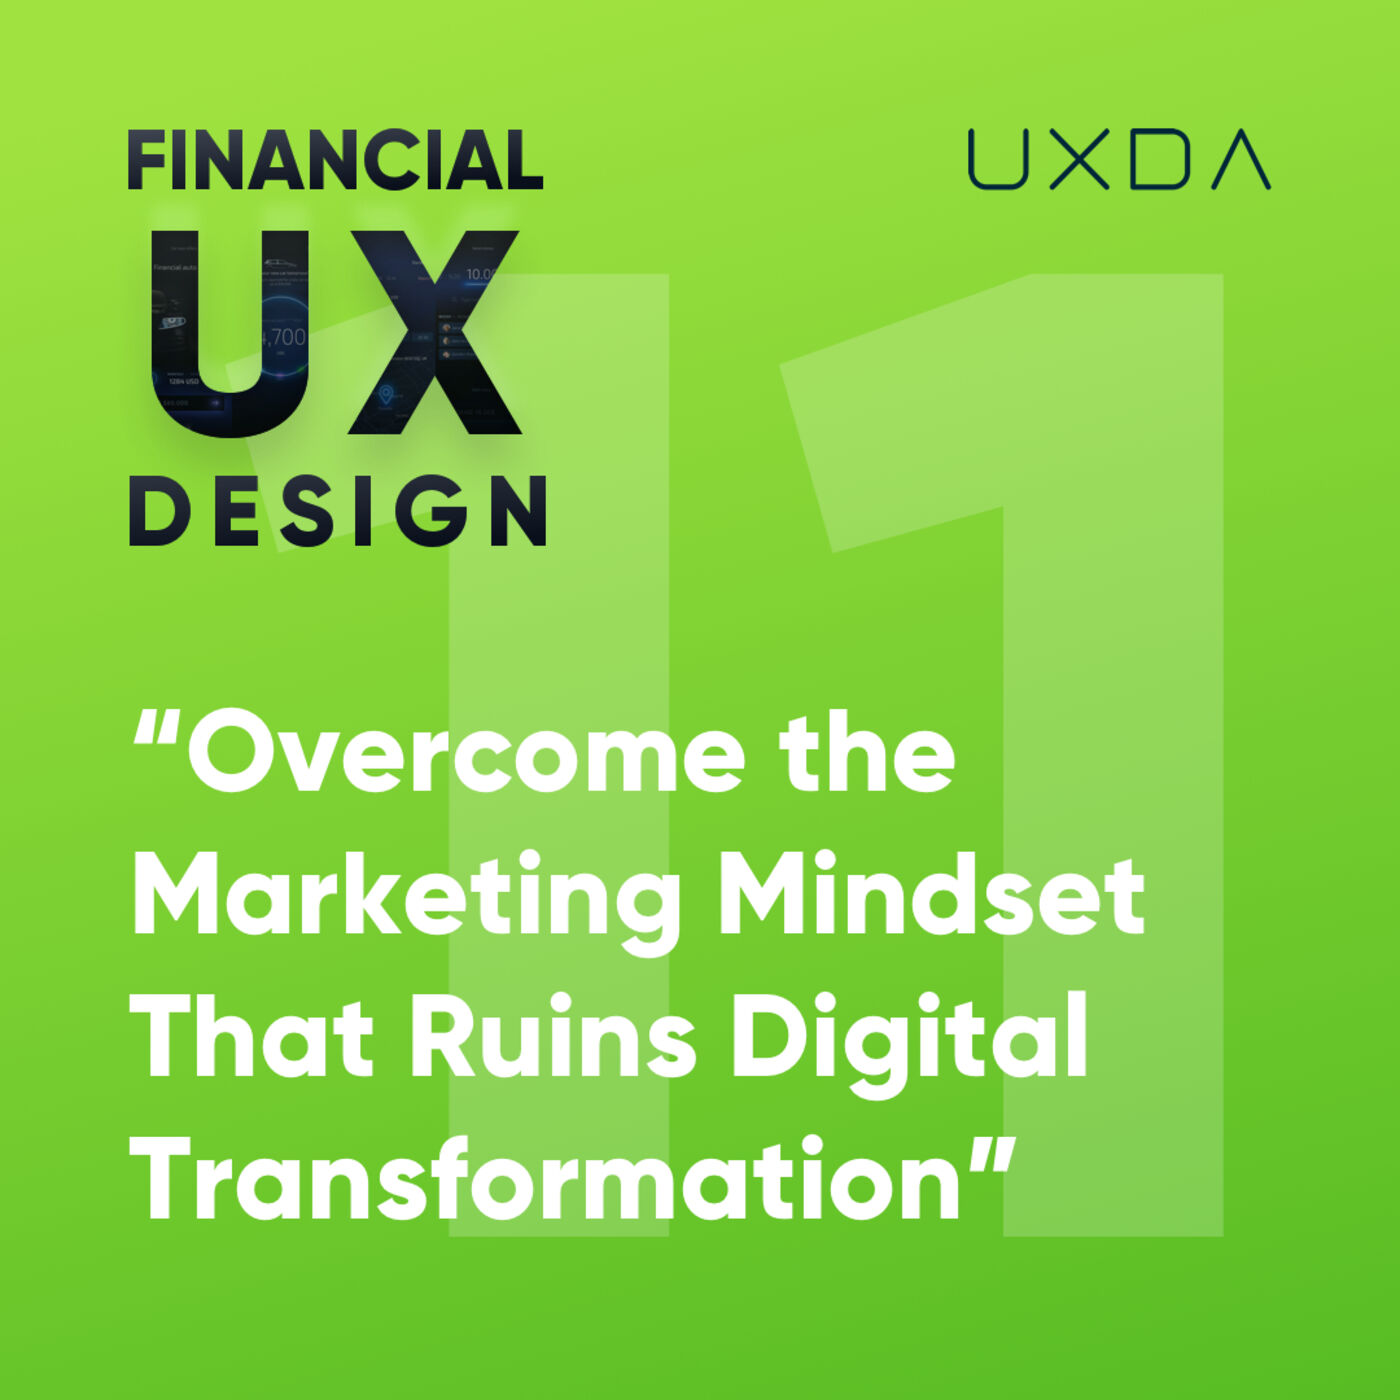 """#11 Overcome the """"Marketing Mindset"""" That Ruins Digital Transformation in Banking"""